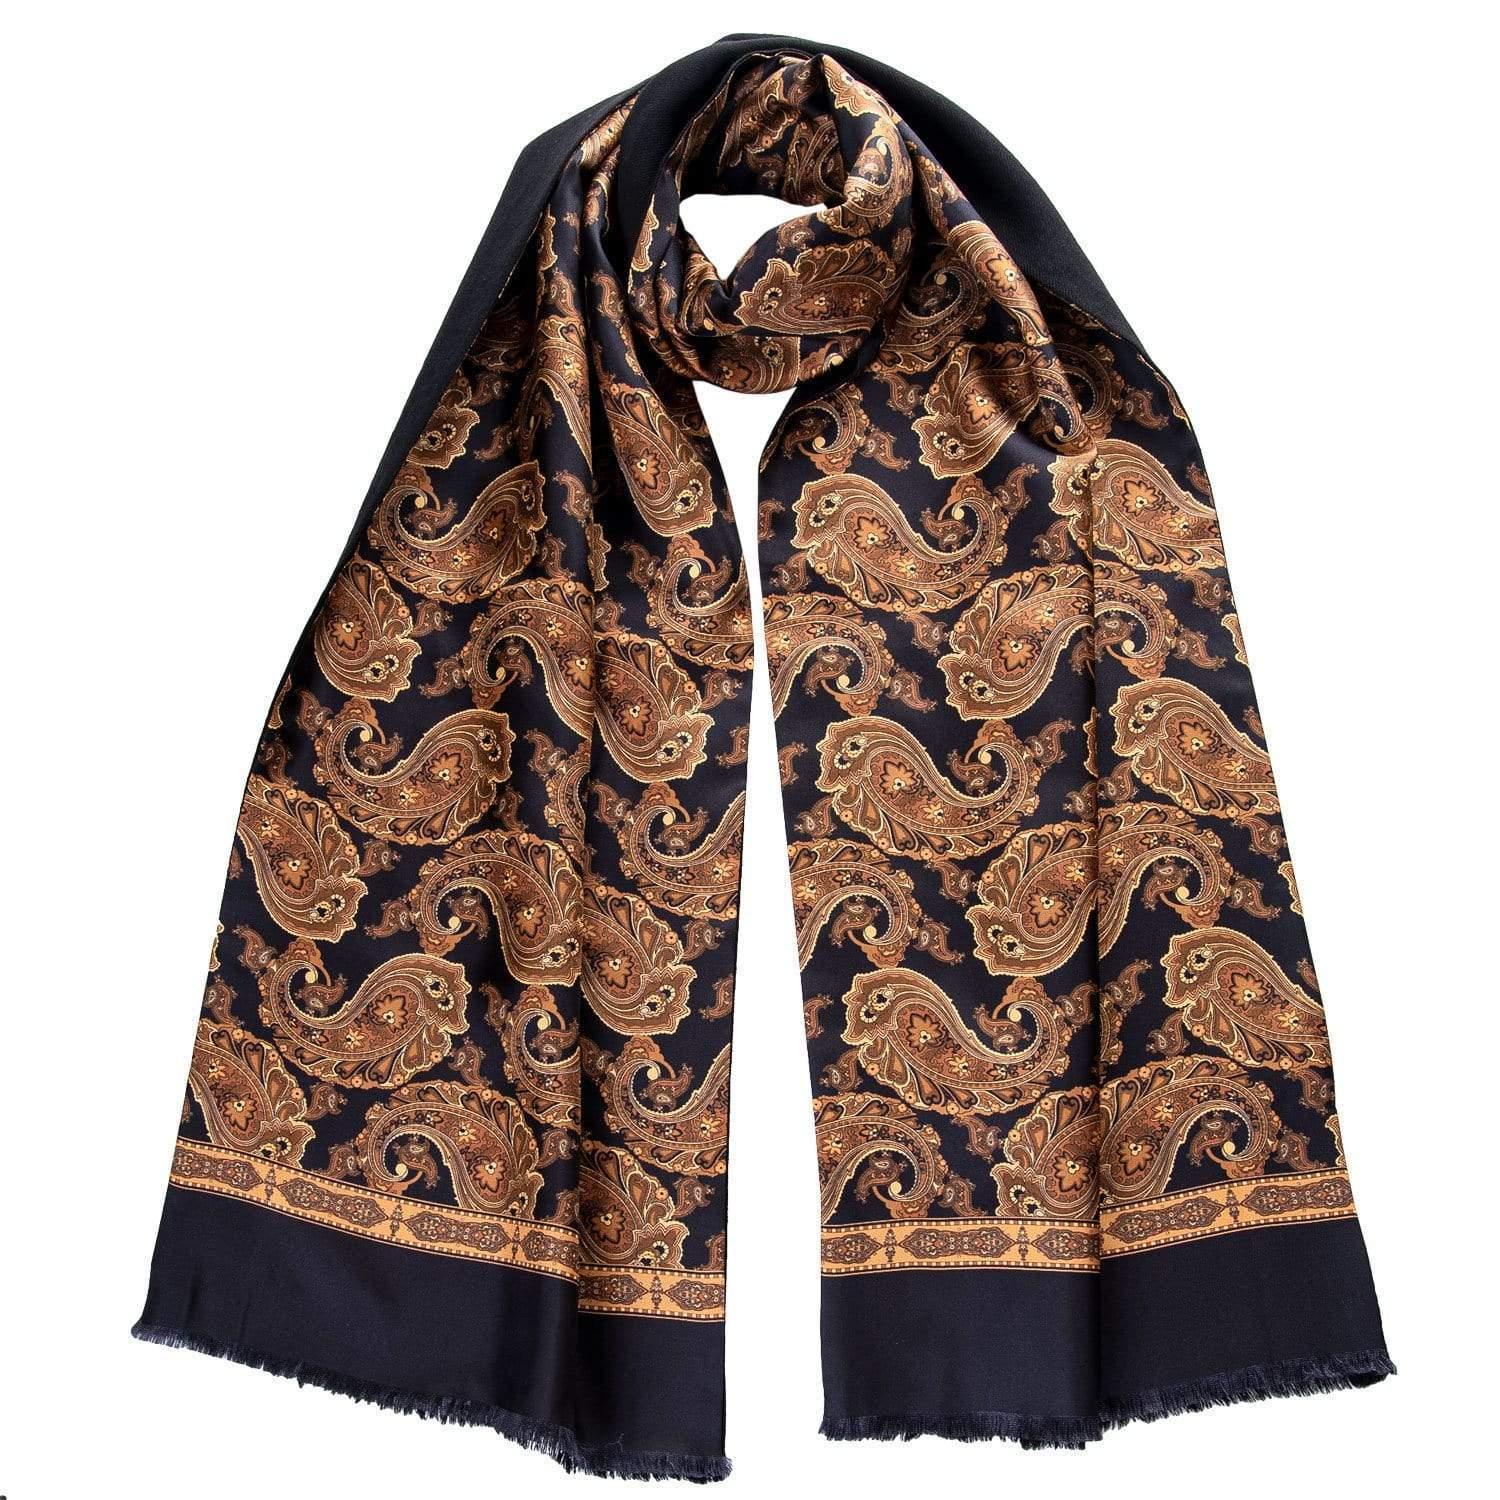 Italian Silk Wool Scarf - Black Gold Bronze Paisley